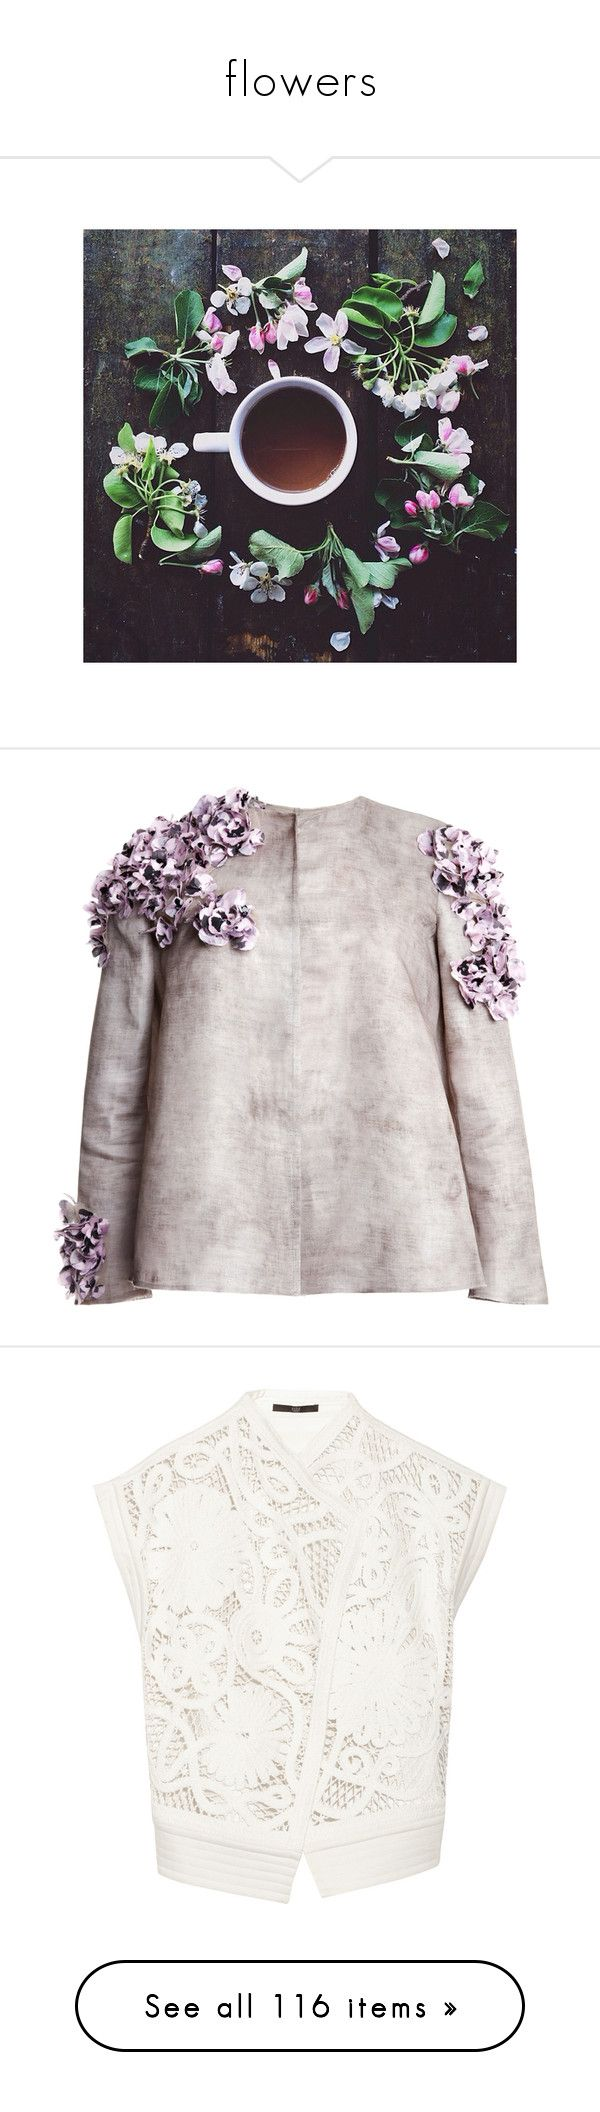 """flowers"" by dorothiable ❤ liked on Polyvore featuring pictures, instagram, backgrounds, insta, images, outerwear, jackets, tops, giambattista valli and grey"